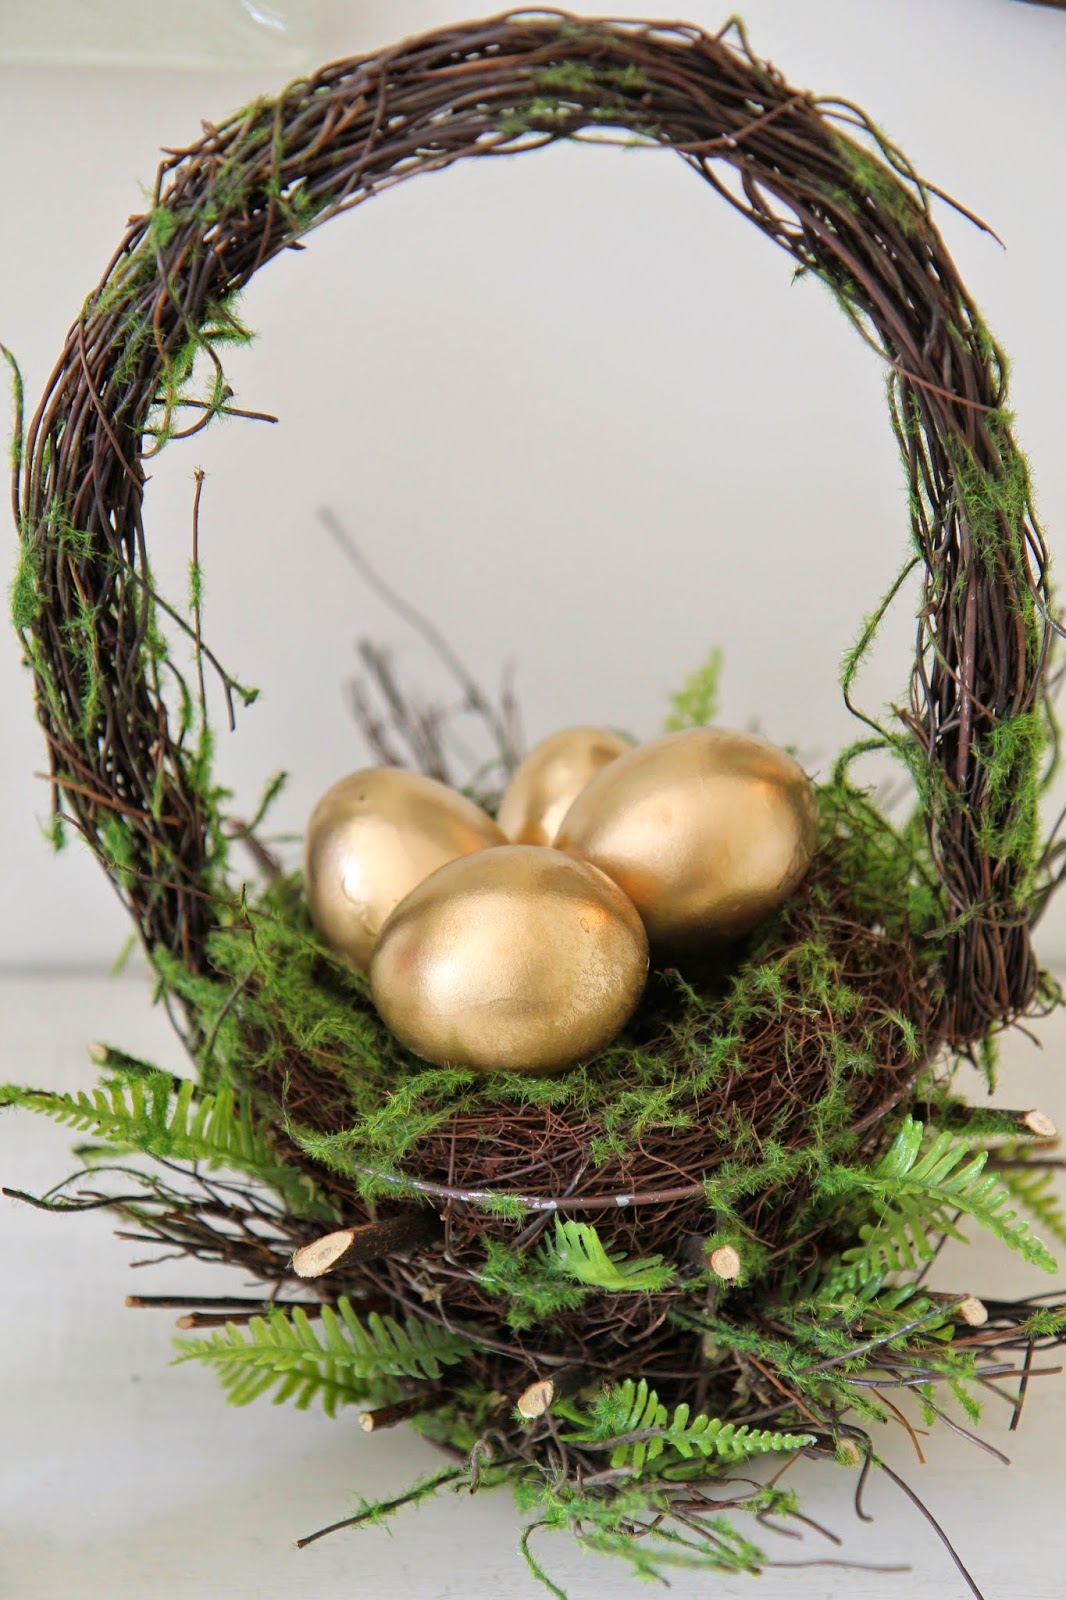 Golden Eggs in a Basket; Easter Buffet Table Decor - Nora's Nest